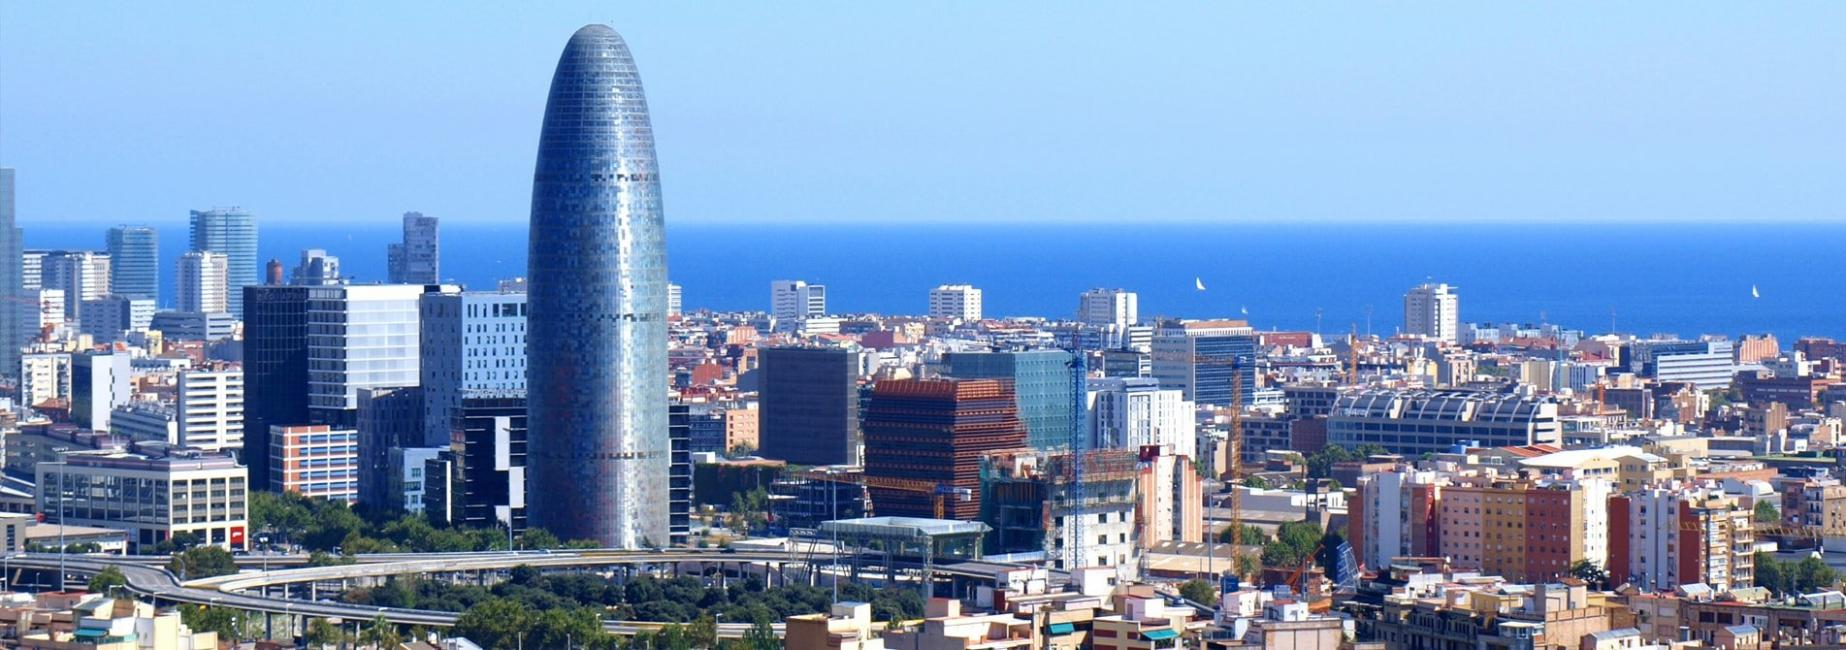 barcelona product design trip header slk he